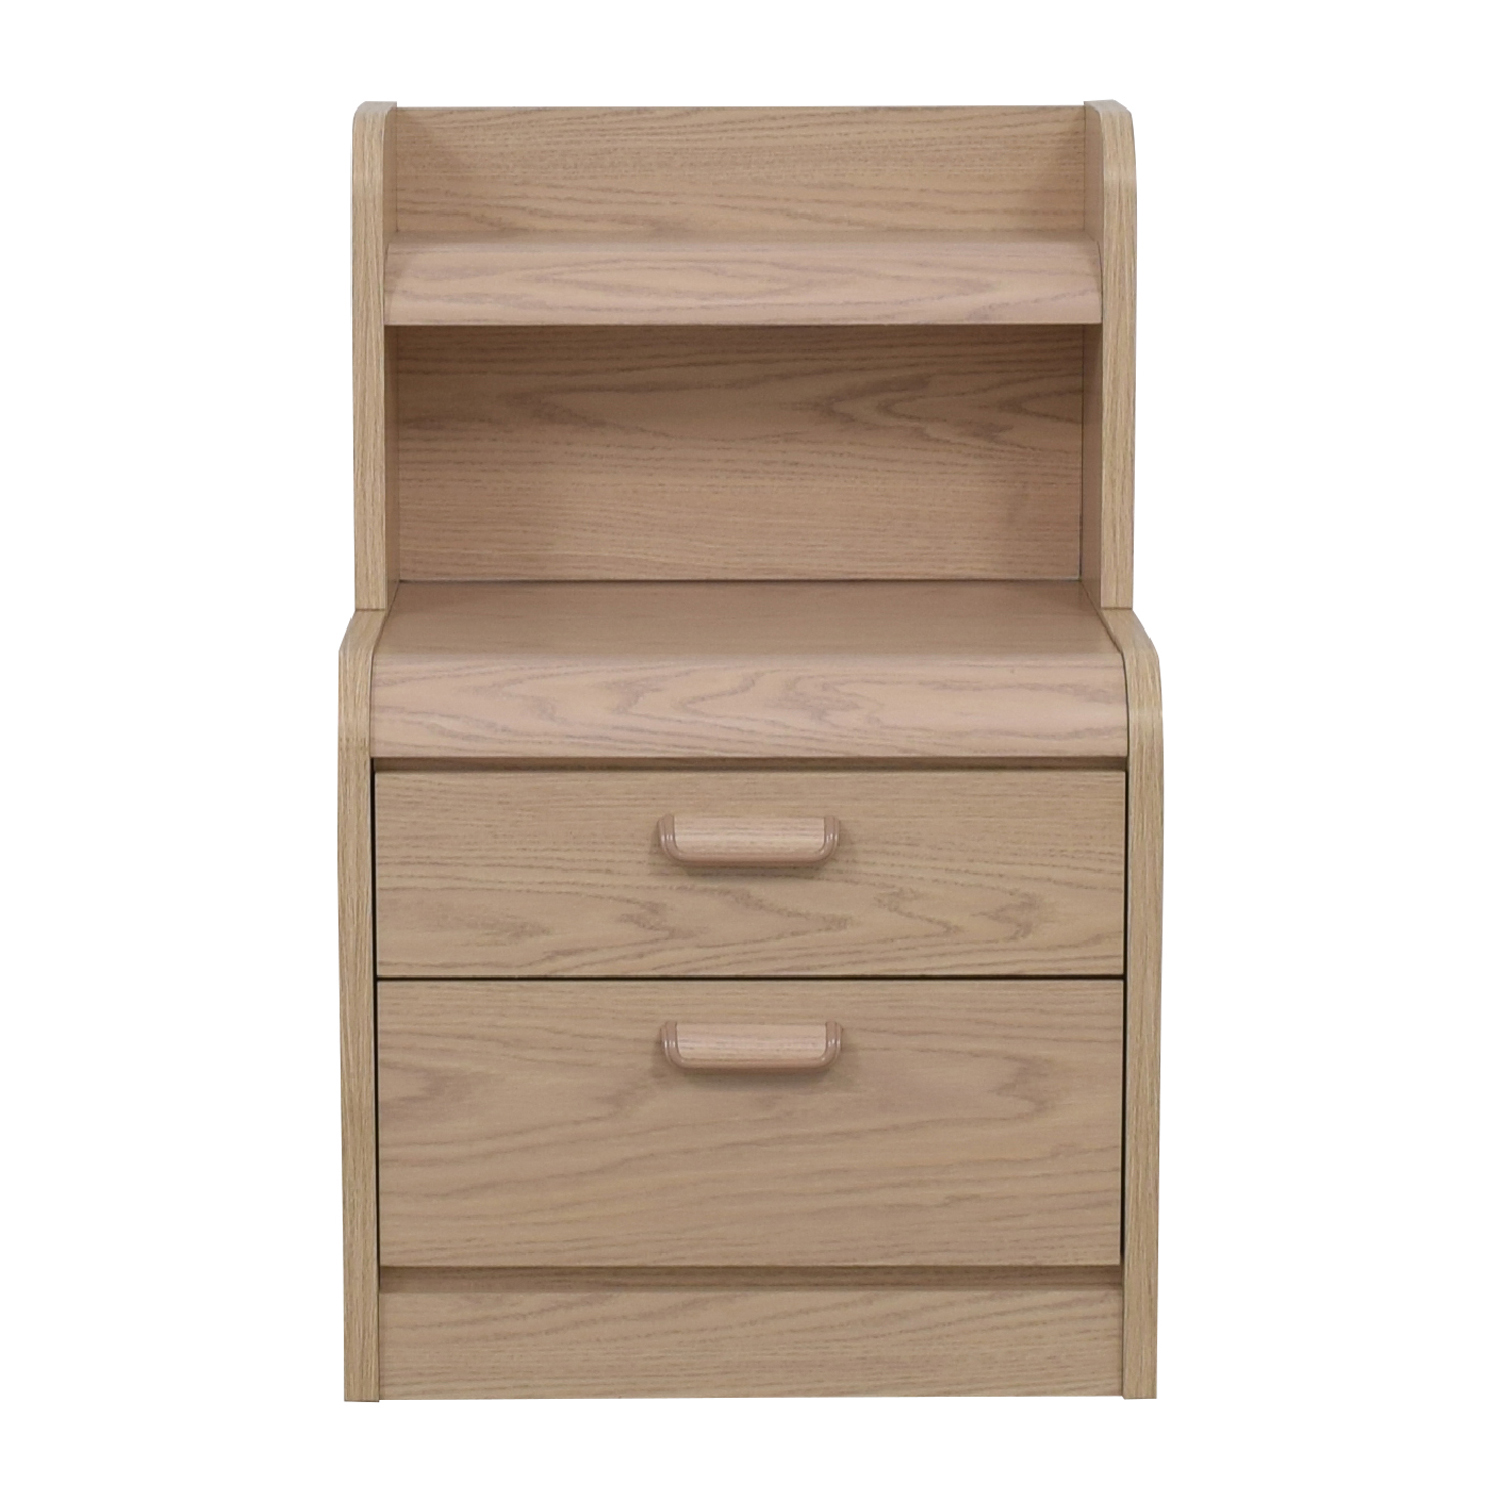 Palliser Palliser Two-Drawer Nightstand with Hutch and Light coupon